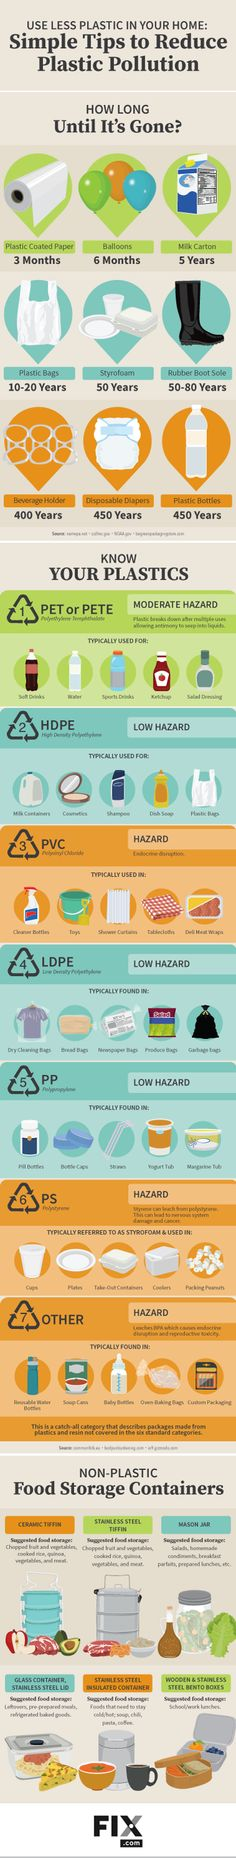 Use Less Plastic in Home: Tips to Reduce Plastic Pollution #Infographics